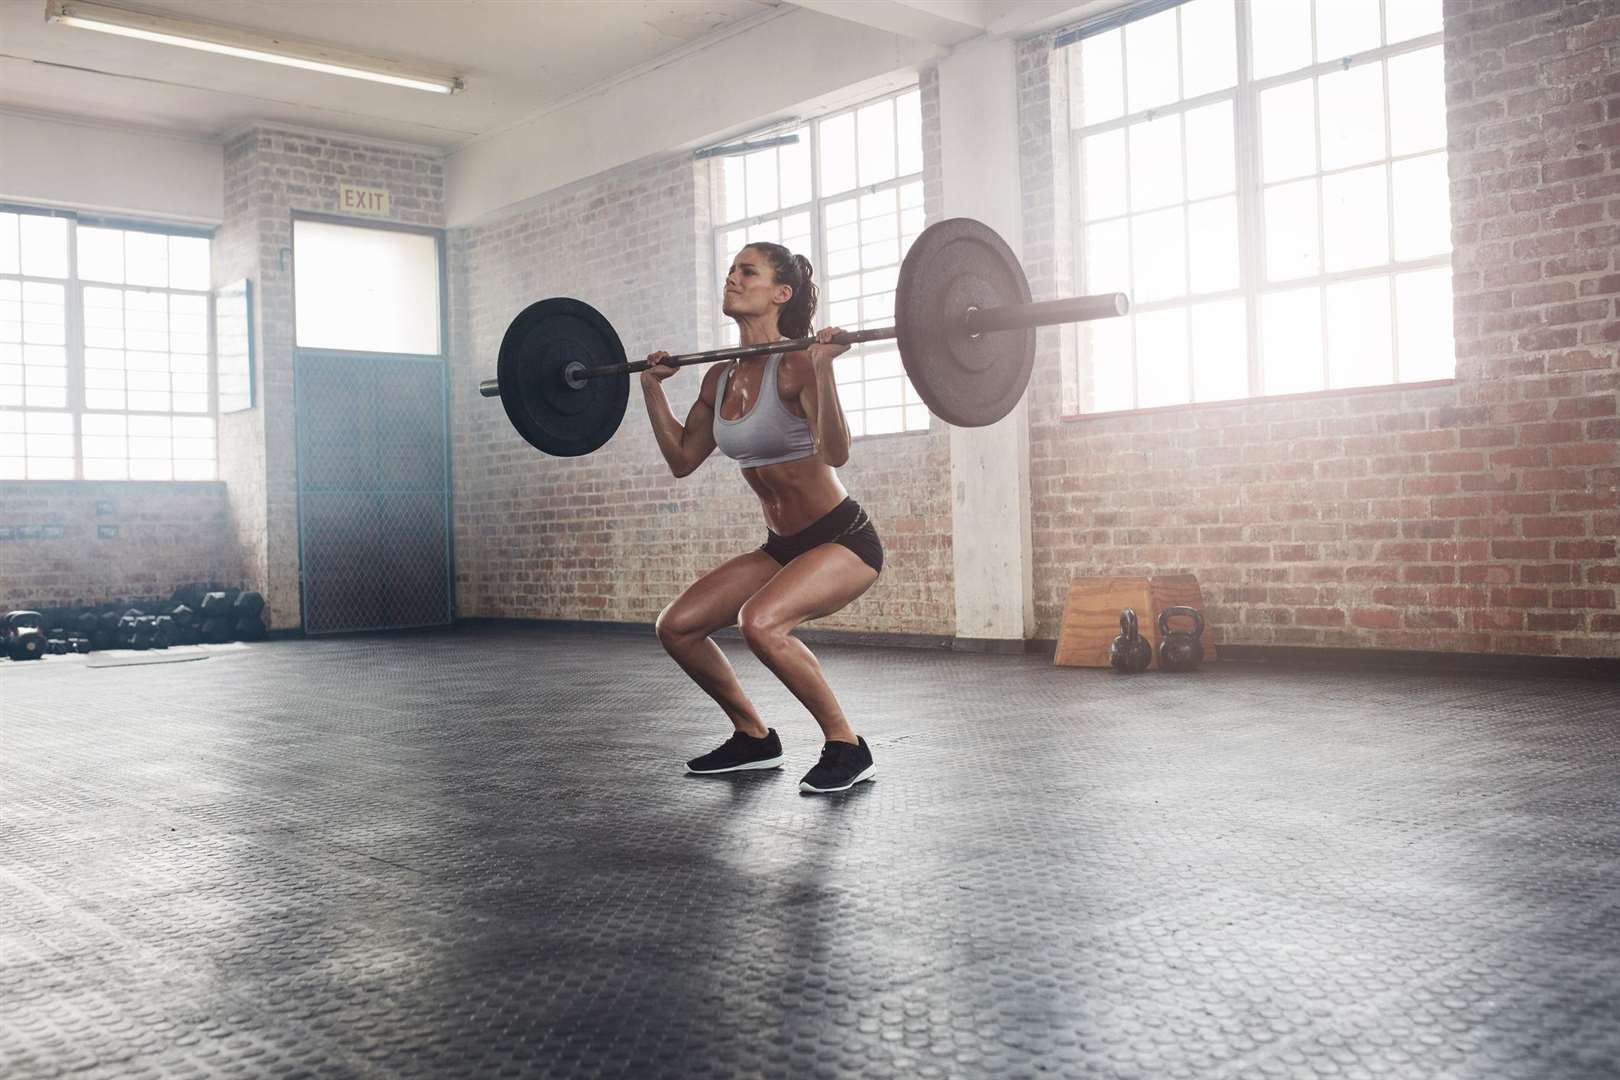 A growing number of women are curious about trying weight training